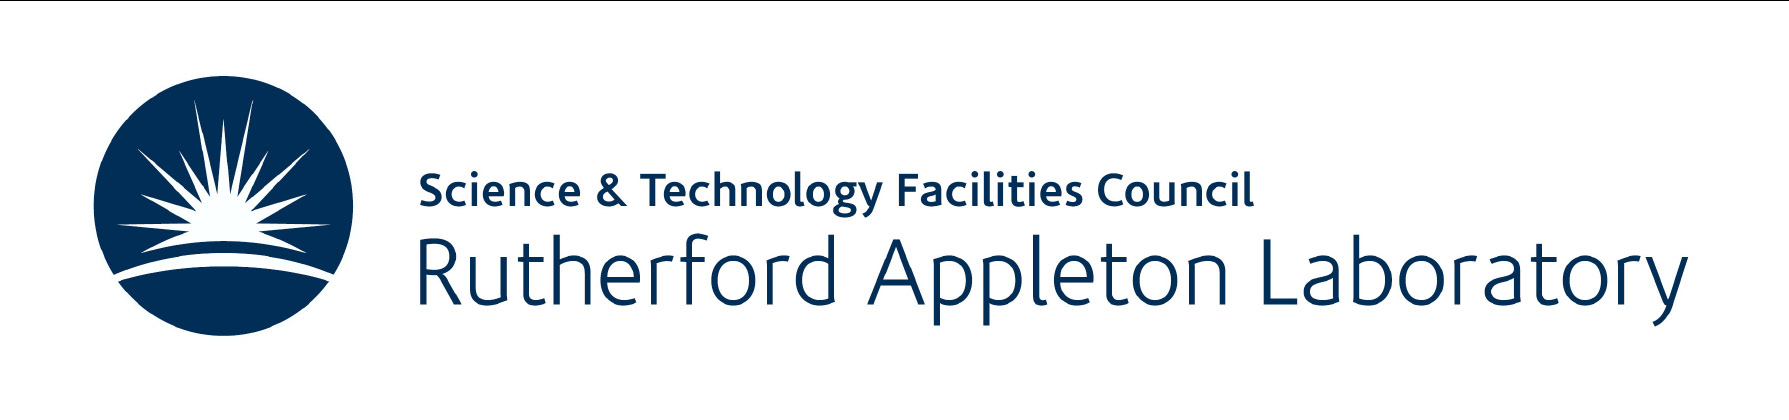 The Rutherford Appleton Laboratory logo